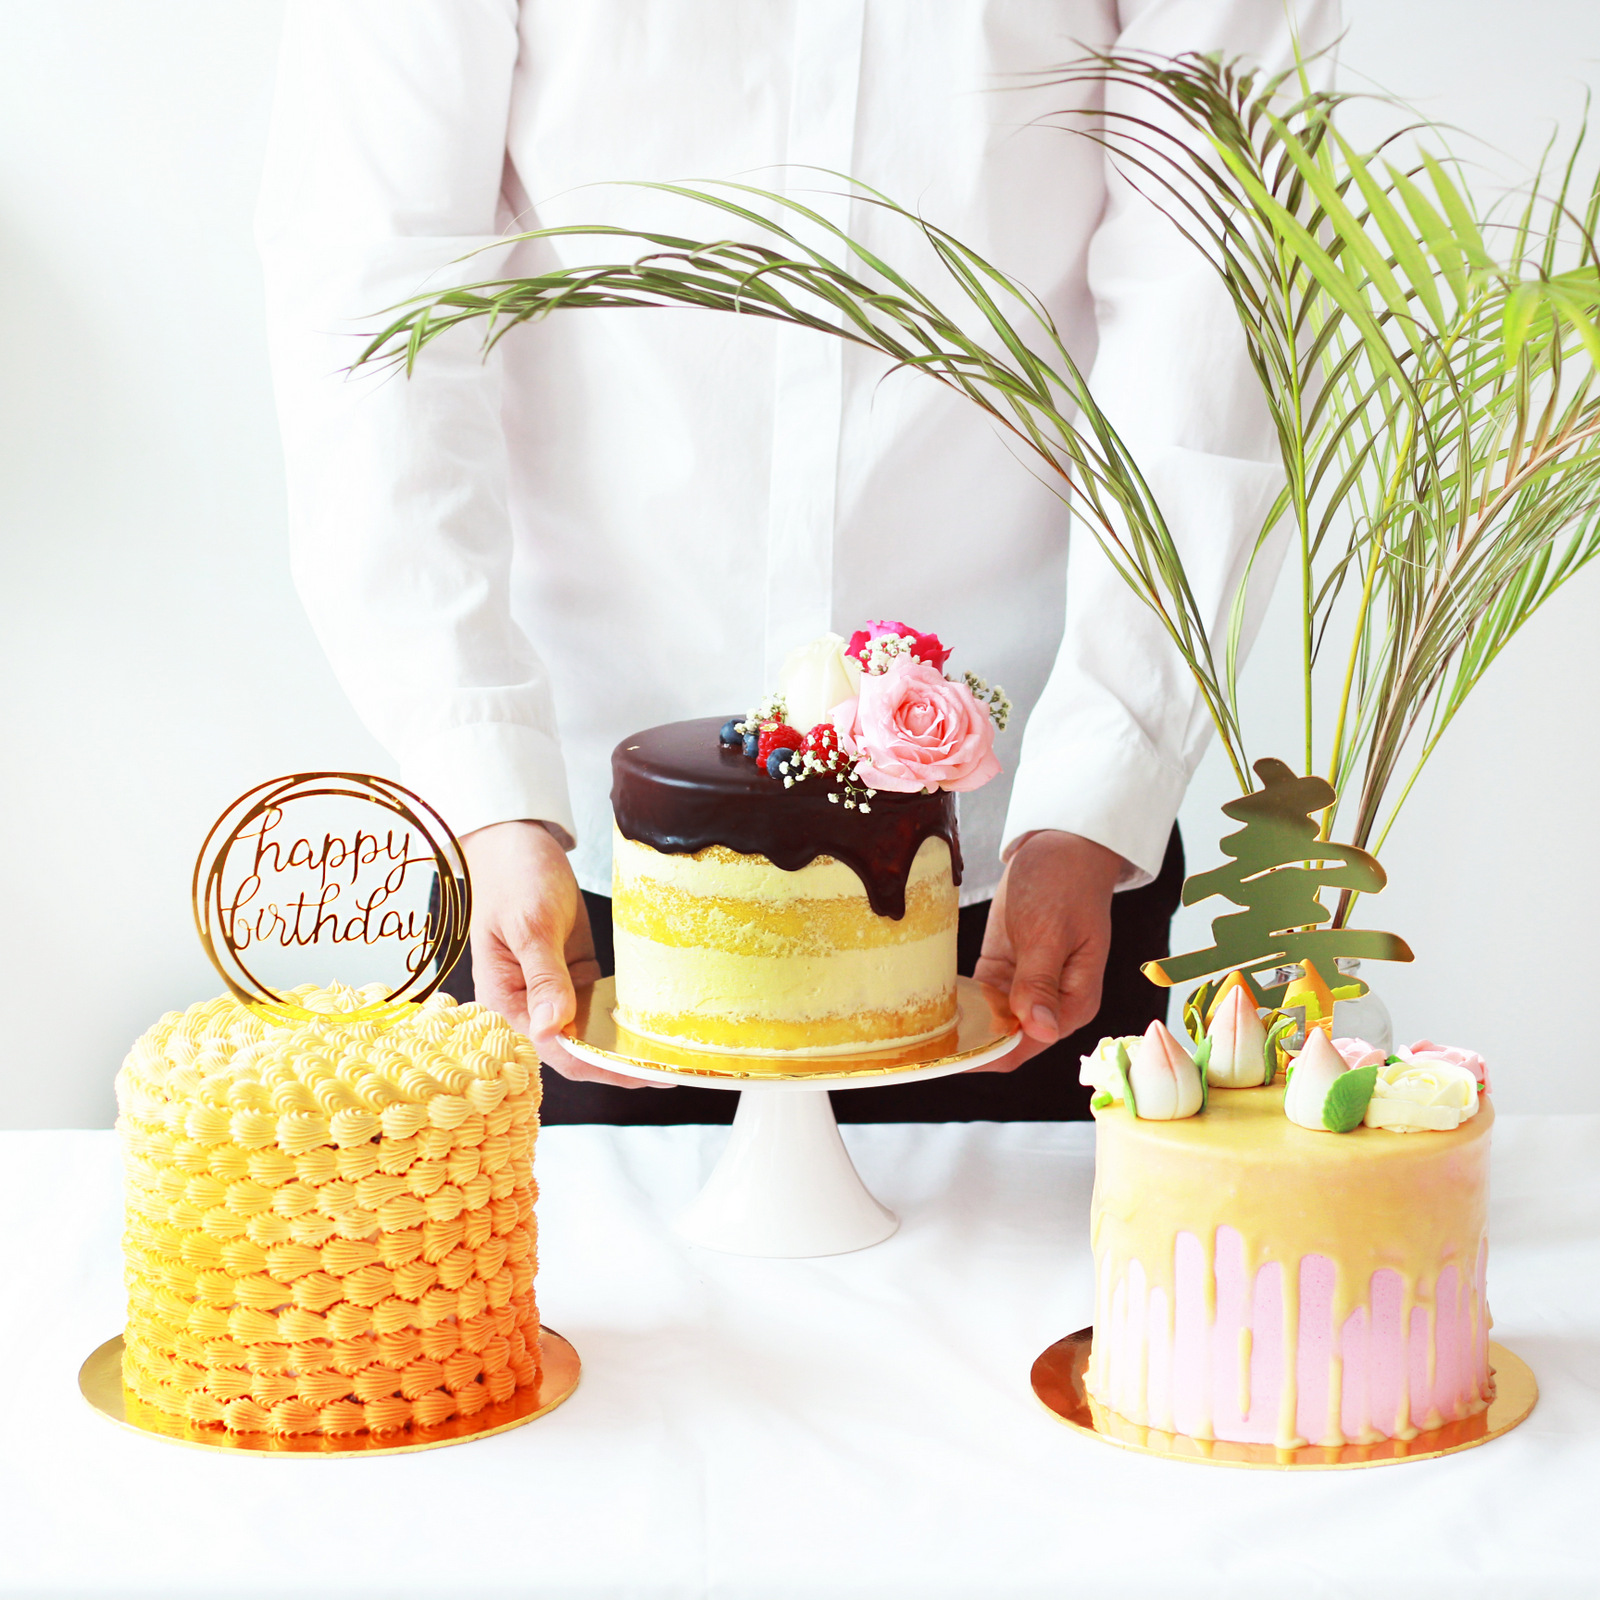 Cake Together: Delivering over 1,200 cakes from 120-plus Malaysian bakers